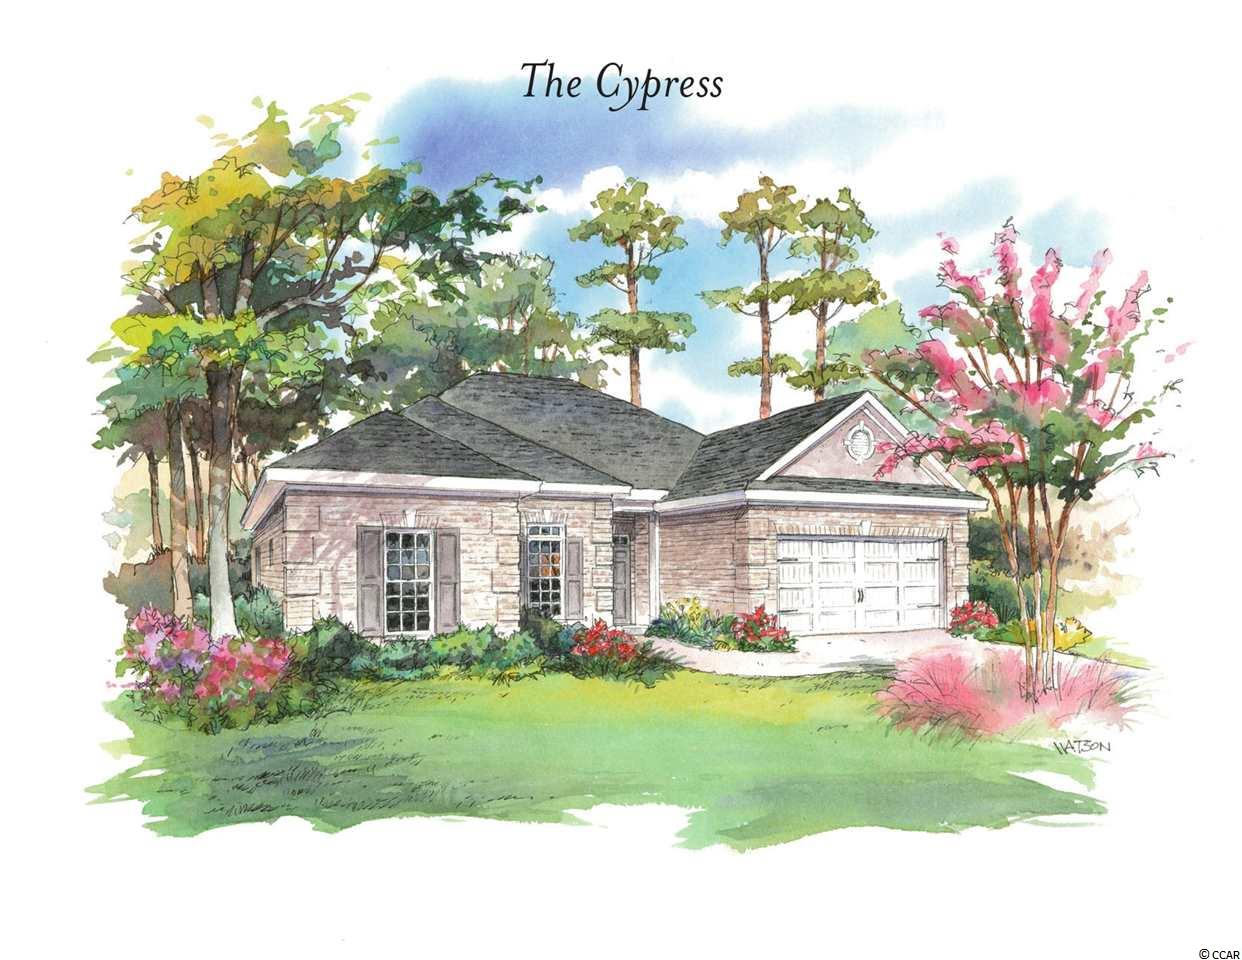 This home is To Be Built, so buy now to custom build your all brick home in one of the finest neighborhoods in the grand strand.  The Cypress plan here has an added Bonus Room with full bath and has been our most popular plan.  Cipriana Park at Grande Dunes offers single family homes nestled in the Ocean Village of the premier community, Grande Dunes.  This boutique community has only 4 vacant Lots remaining and is conveniently located to all Myrtle Beach has to offer; beautiful beaches, a treasure trove of restaurants, award winning golf, entertainment venues, designer outlets and shopping, state of the heart medical facilities and much more.  All of the conveniences are within walking distance.  Grande Dunes provides the finest amenities in the coastal Carolinas, with its' private Ocean Club, Marina, Tennis Club and Championship Golf Courses. One of the area's finest and most desired builders, Traditional Homebuilders, constructs your home to be well above necessary codes and standards by using the highest quality materials, finest and consistent contractors, constant supervision and attention to every detail.  Come live the Grande life. Please Note:  Photos of the home are not this home but are from a past Cypress Model Home.